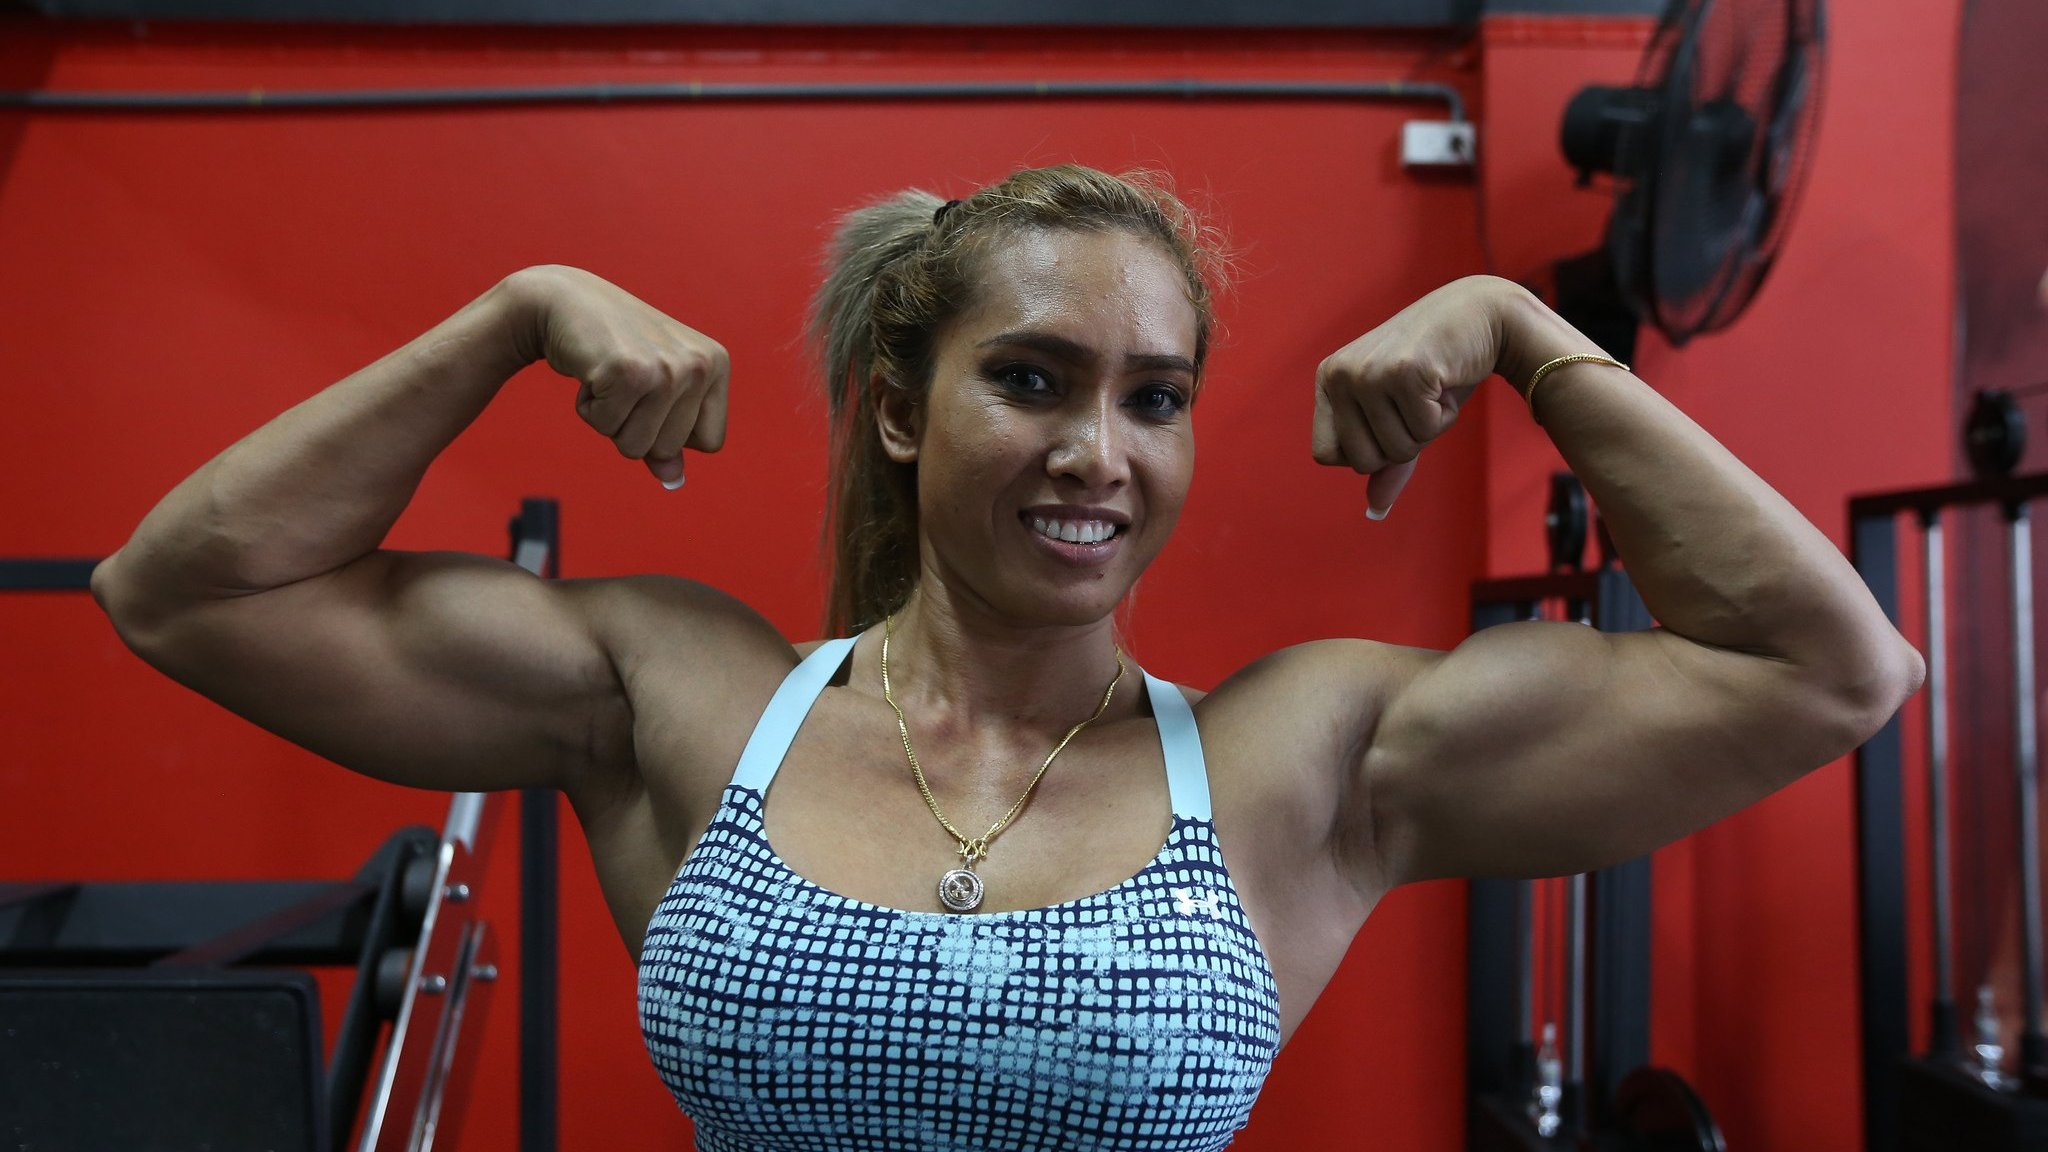 Bodybuilding females steroids are nasal steroids bad for you